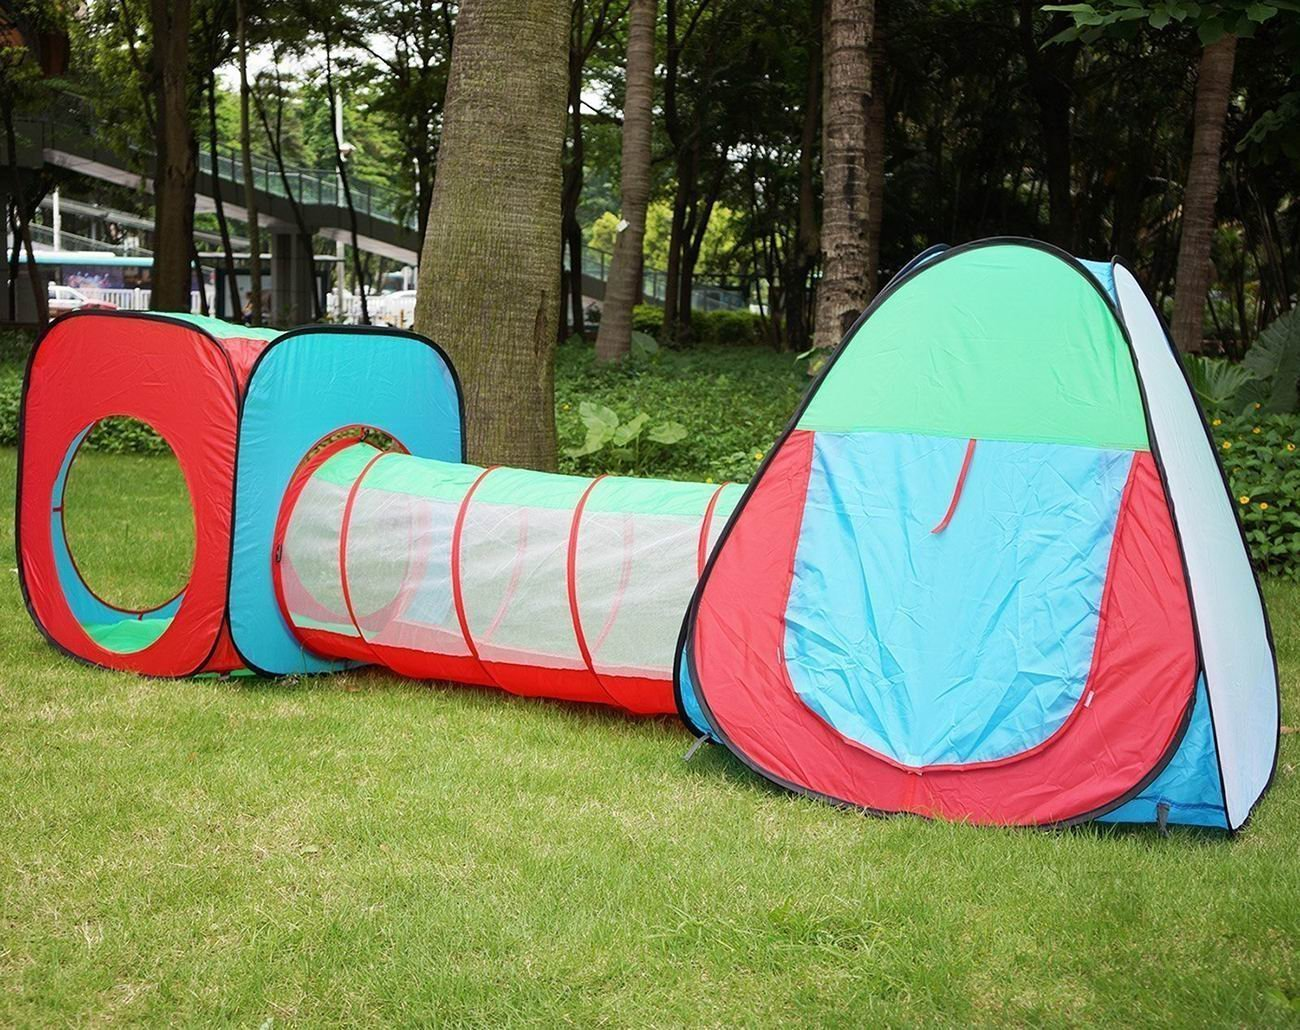 ... Kids Indoor Play Tent With Tunnel SetOutdoor Children Playhouse Ball Tent - Perfect Gift ... & Kids Play Tent With Tunnel SetOutdoor Children Playhouse u2013 VicPow